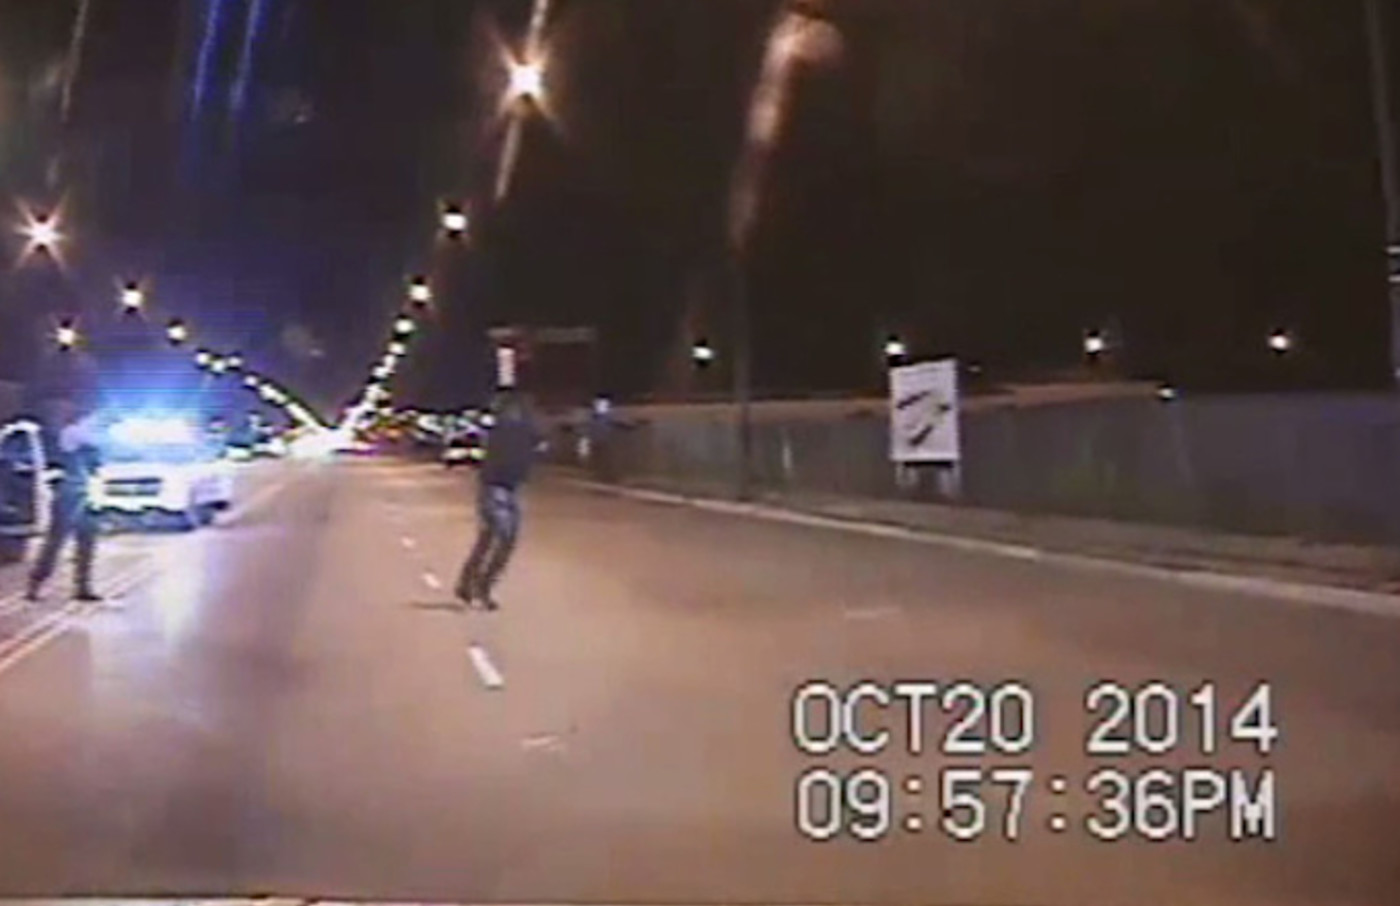 Chicago Police officer Jason Van Dyke shooting is shown shooting Laquan McDonald